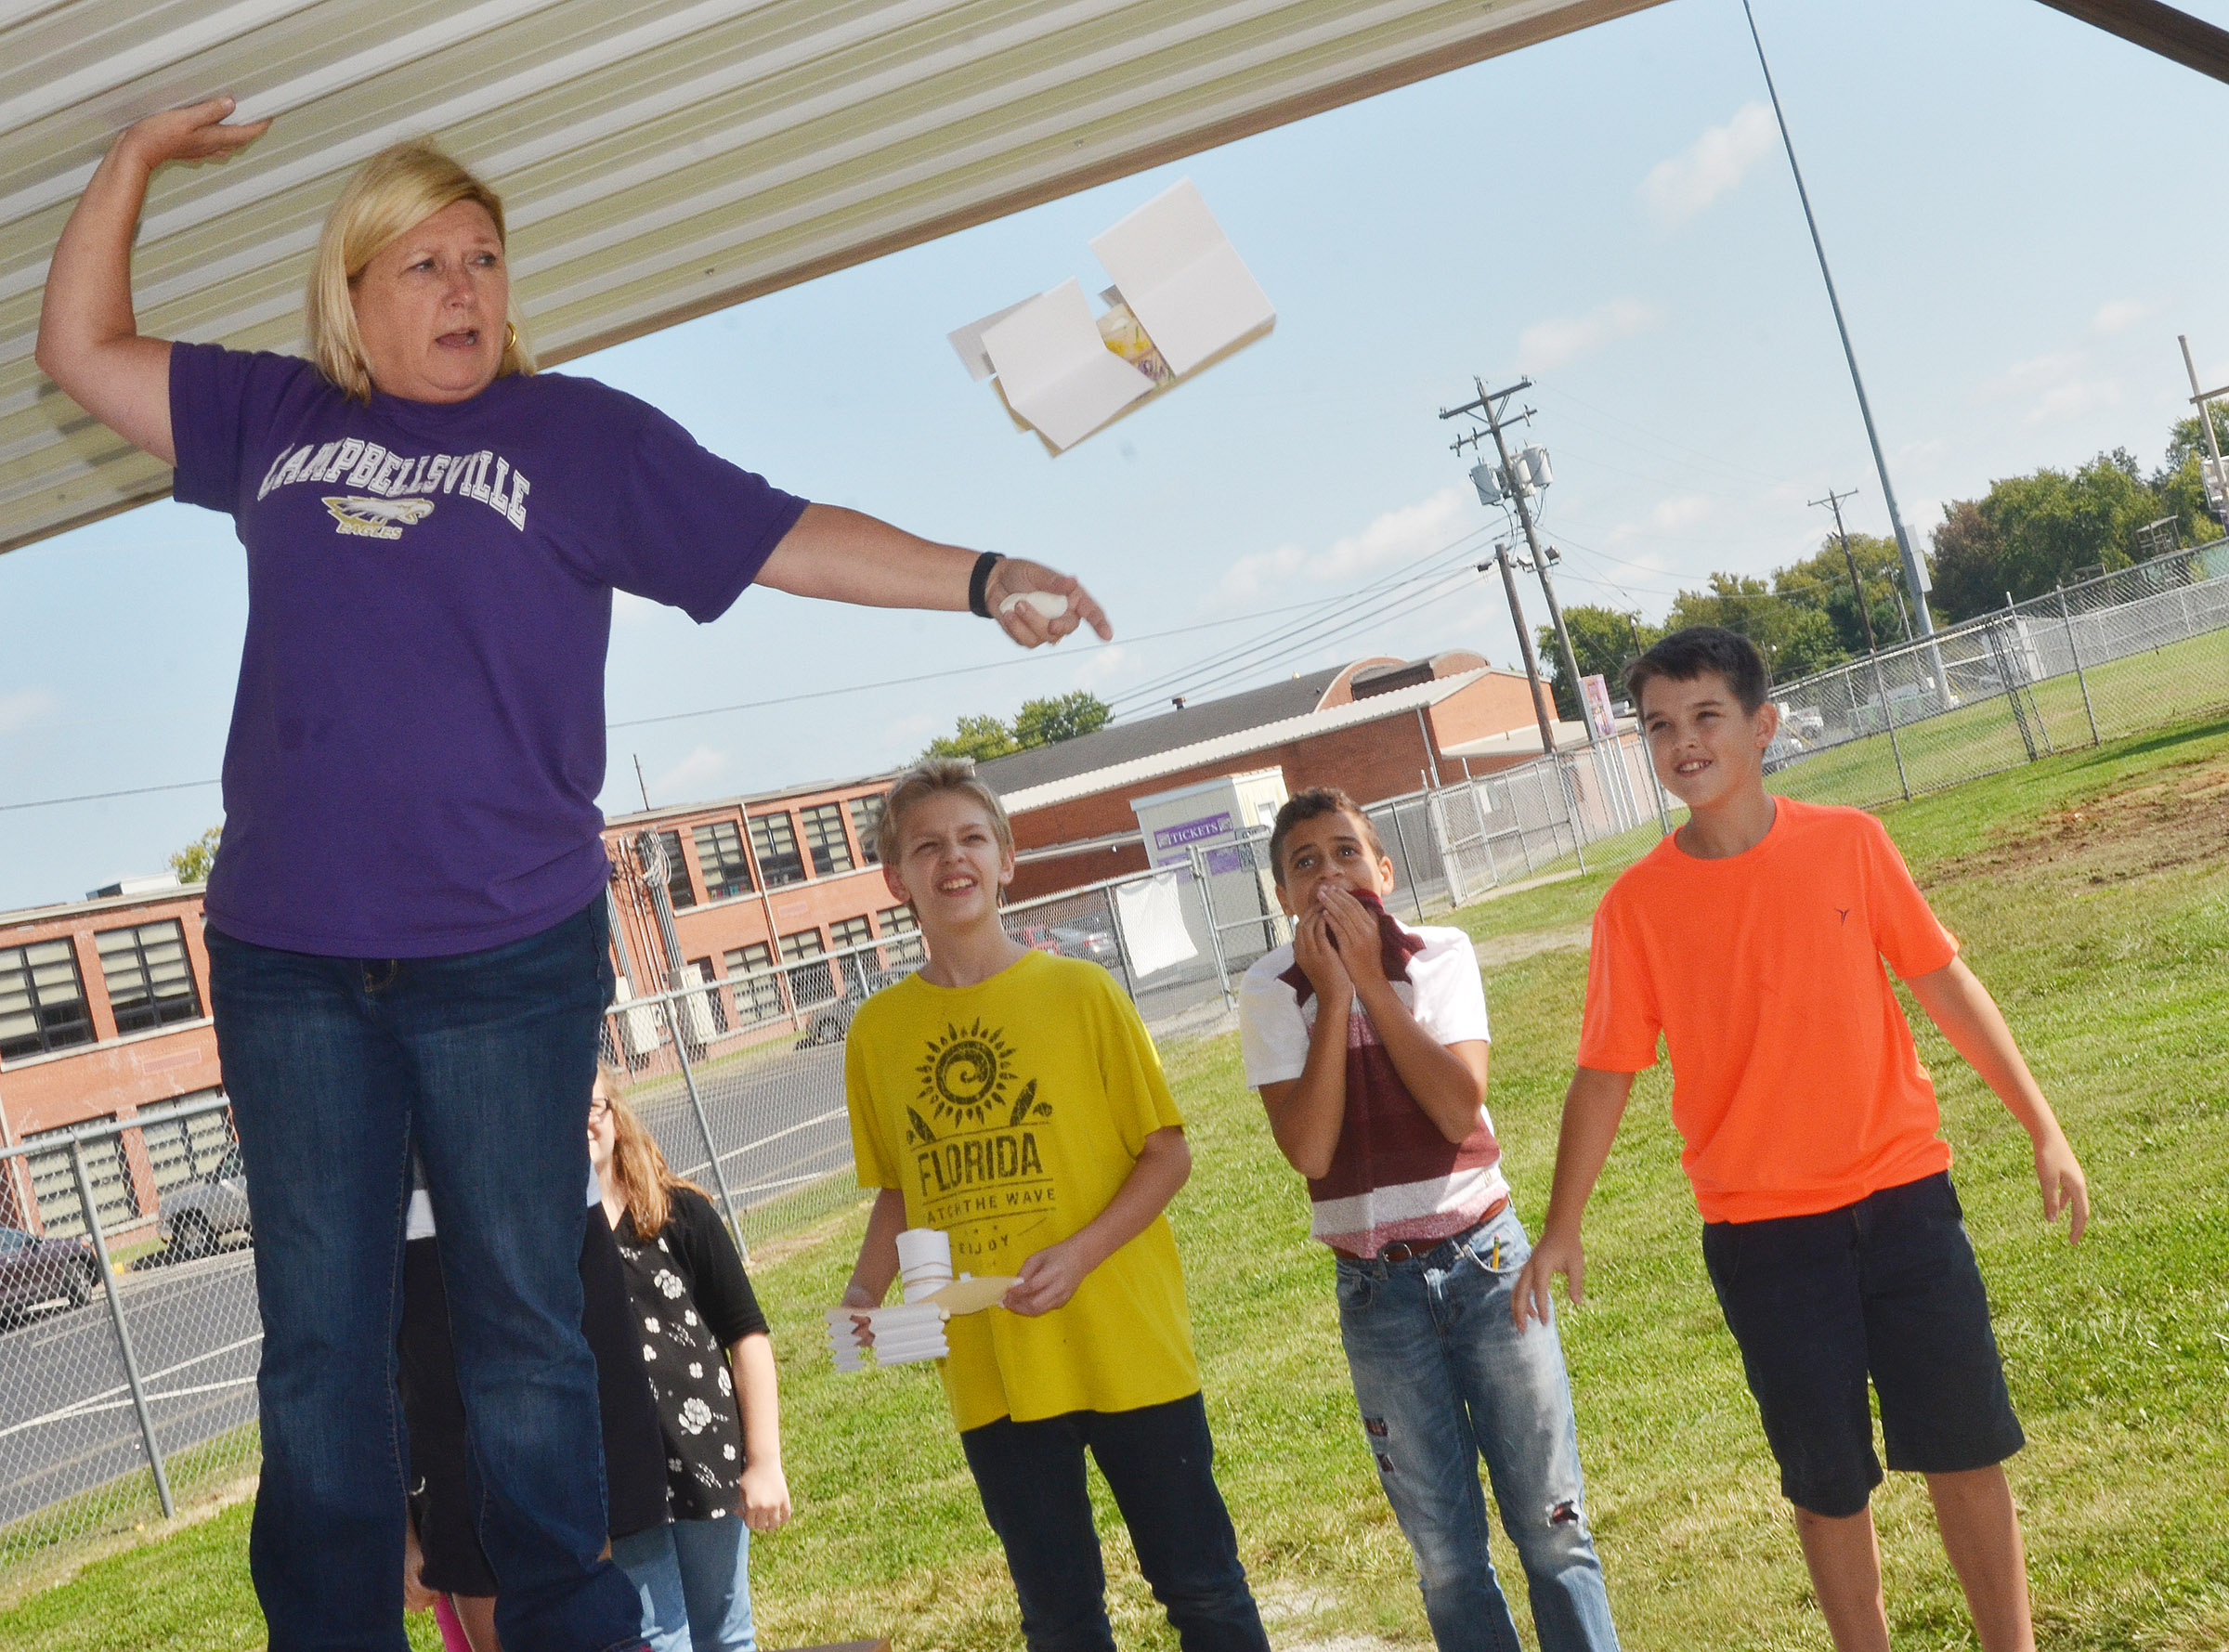 CMS sixth-grade teacher Jan Speer drops a spacecraft, as, from left, Jacob Releford, Tucker Cartwright and Kaden Bloyd watch.